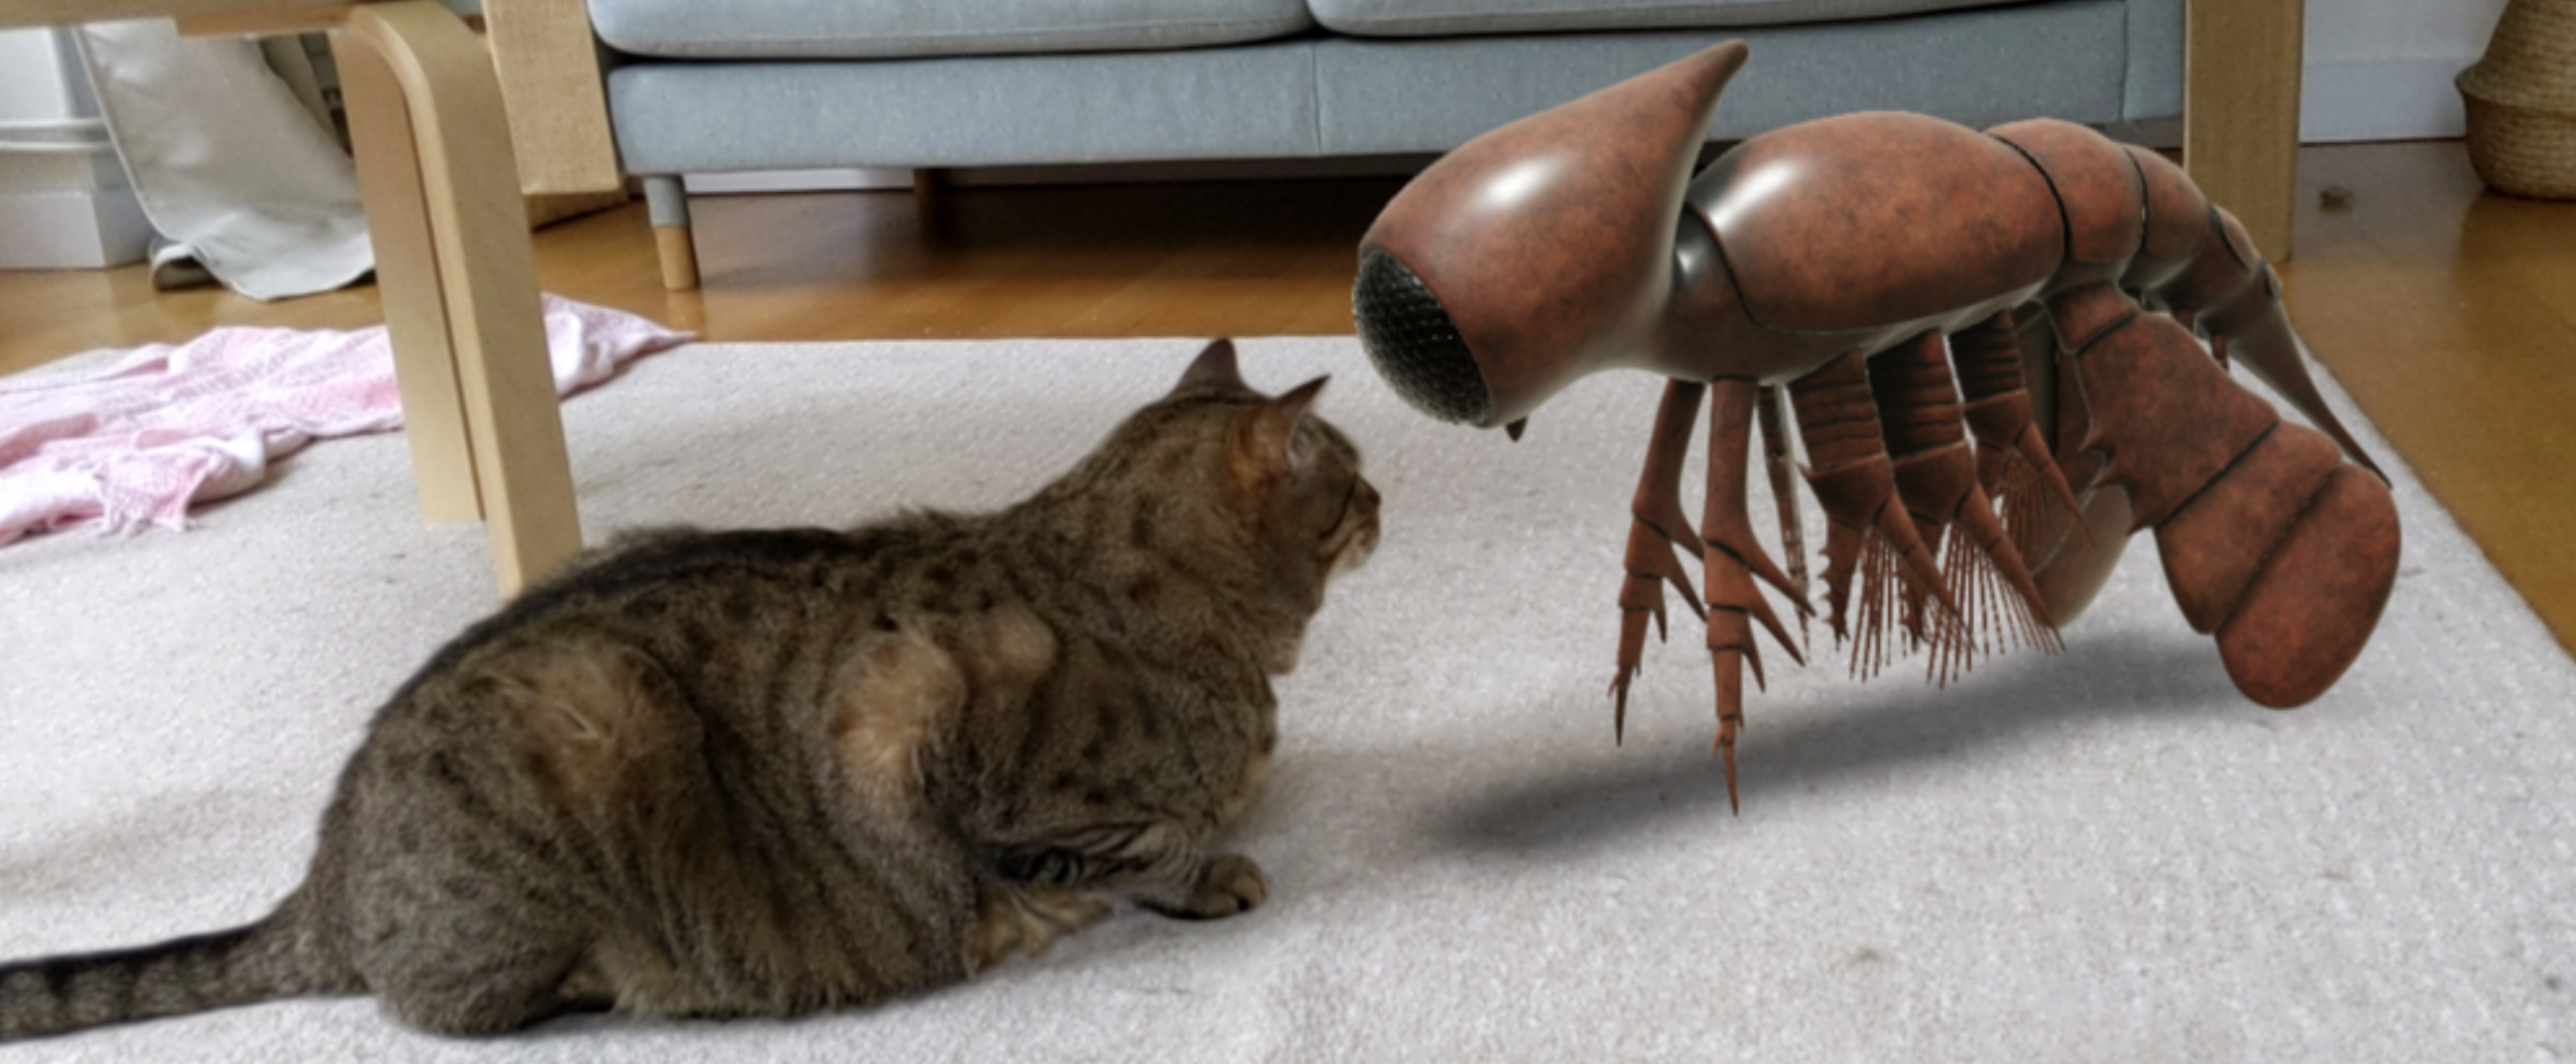 Google's AR update lets you unleash ancient creatures in your living room